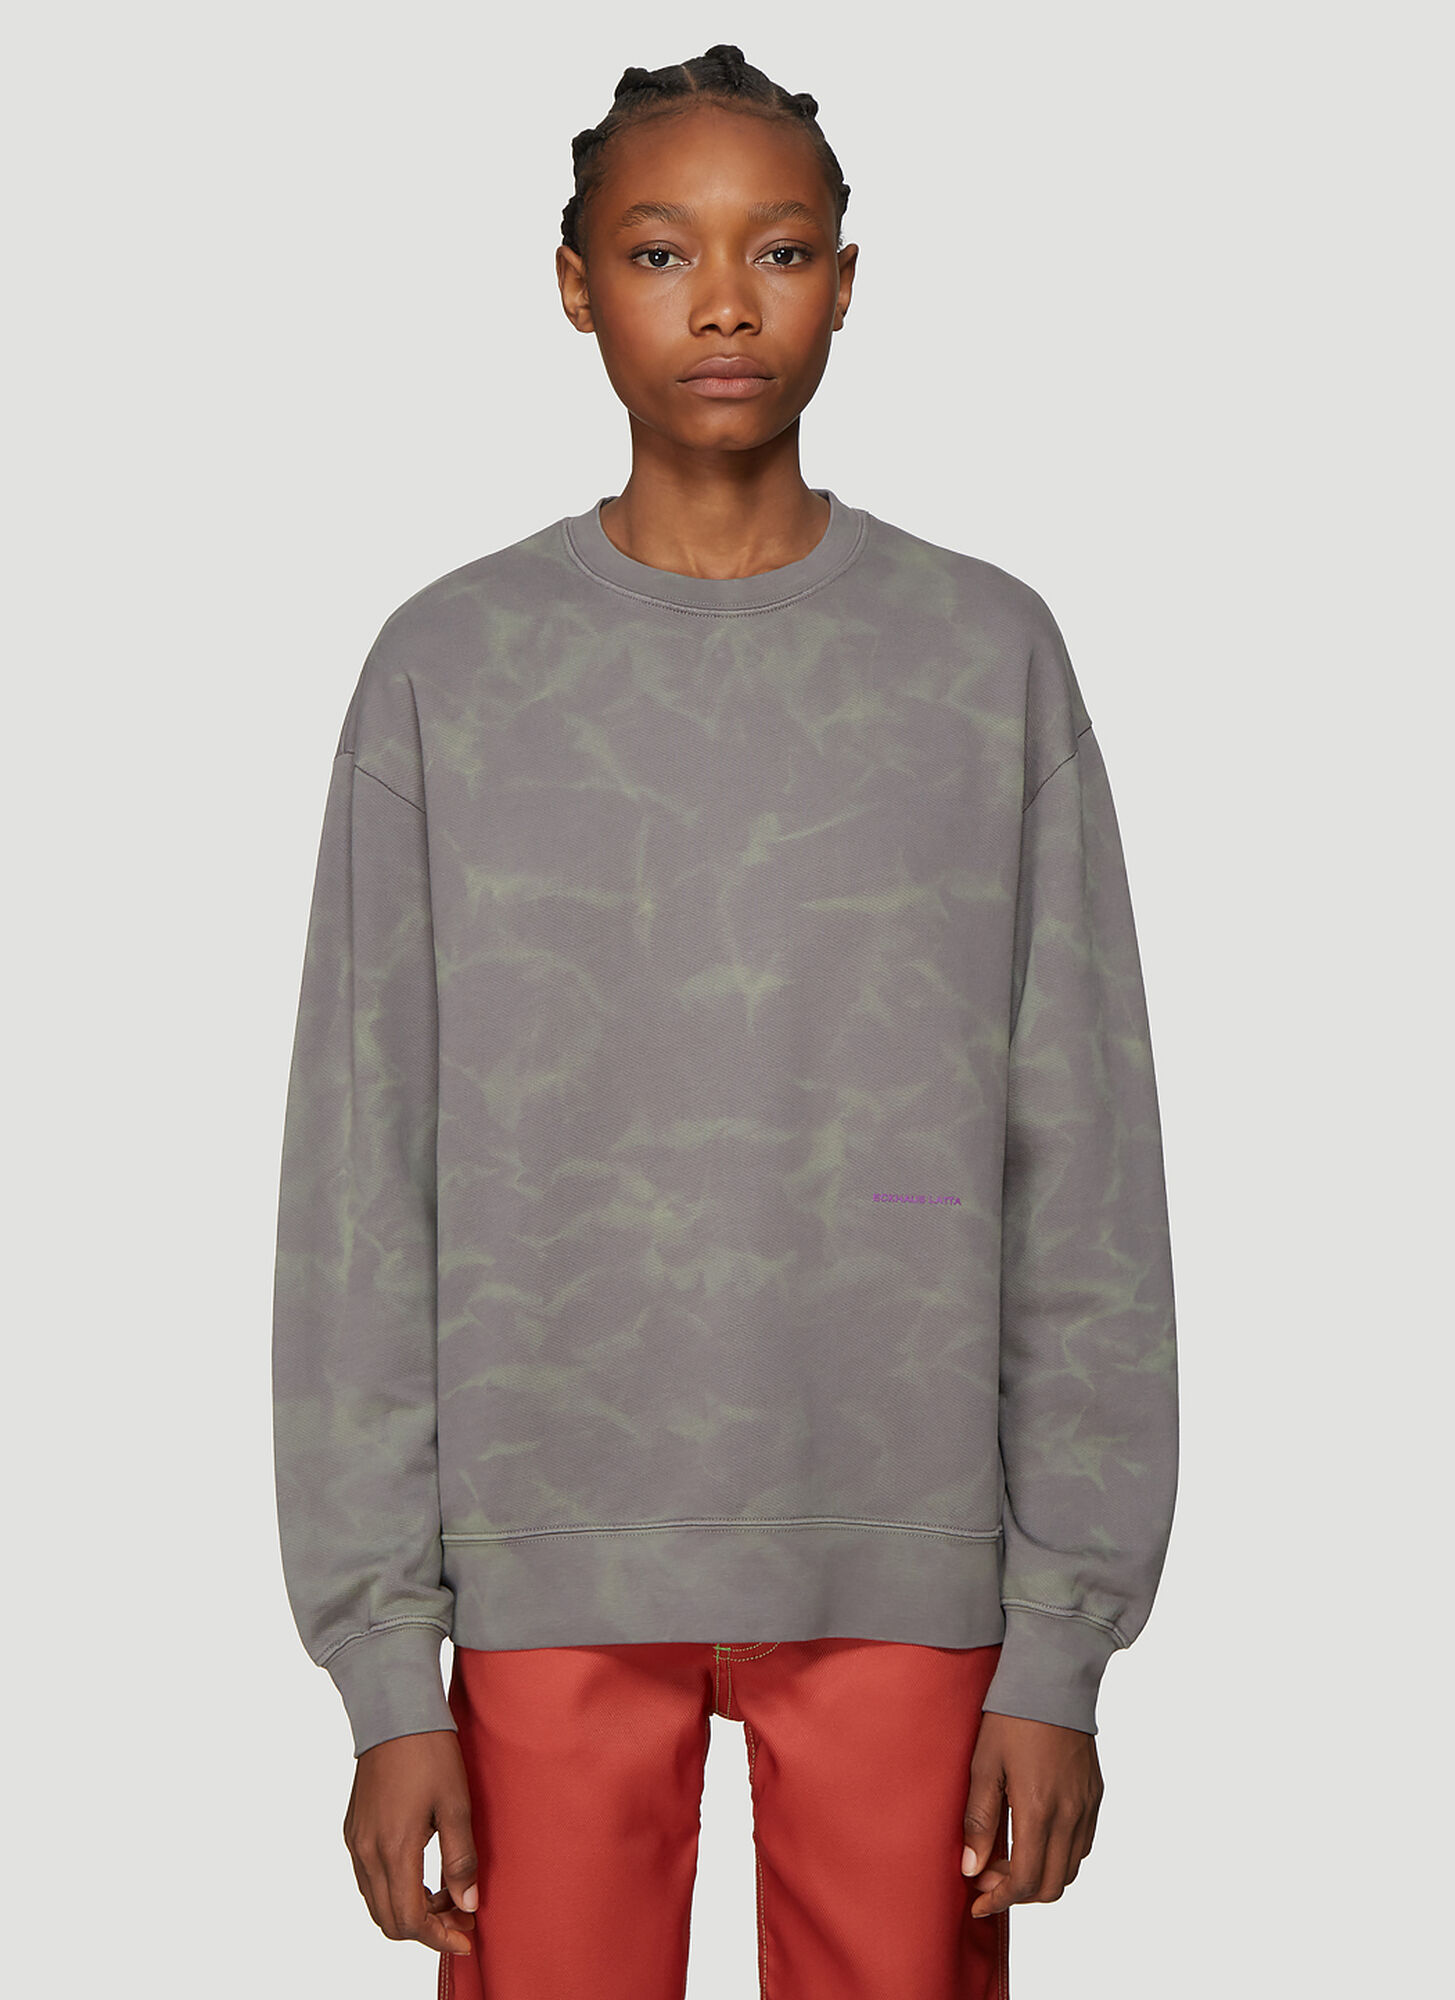 Eckhaus Latta Crew Neck Sweatshirt in Grey